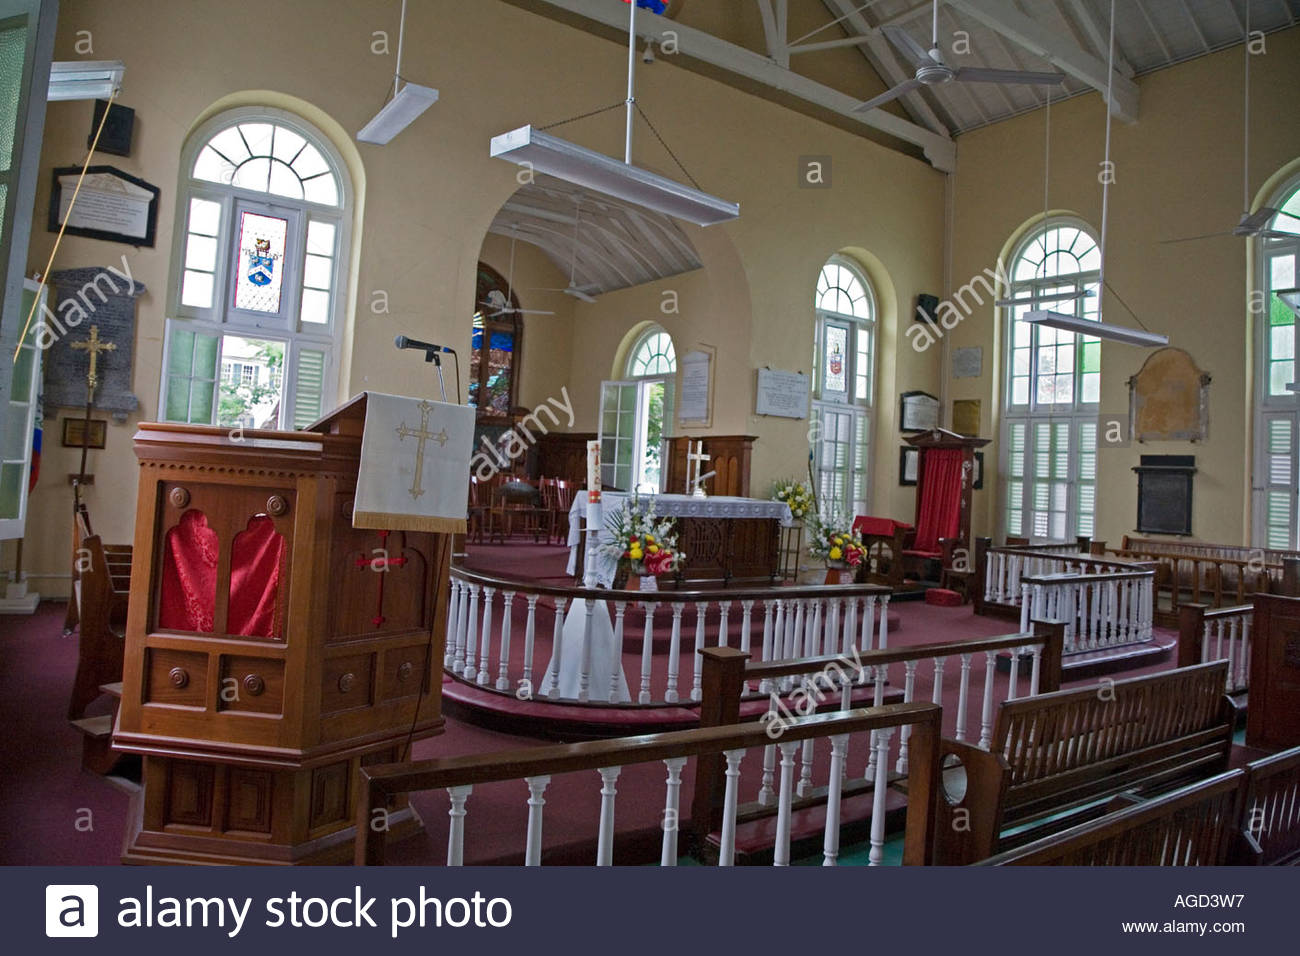 Cathedral of St. John the Baptist Belize City, St Johns Anglican Cathedral in Belize City Stock Photo, Royalty ...